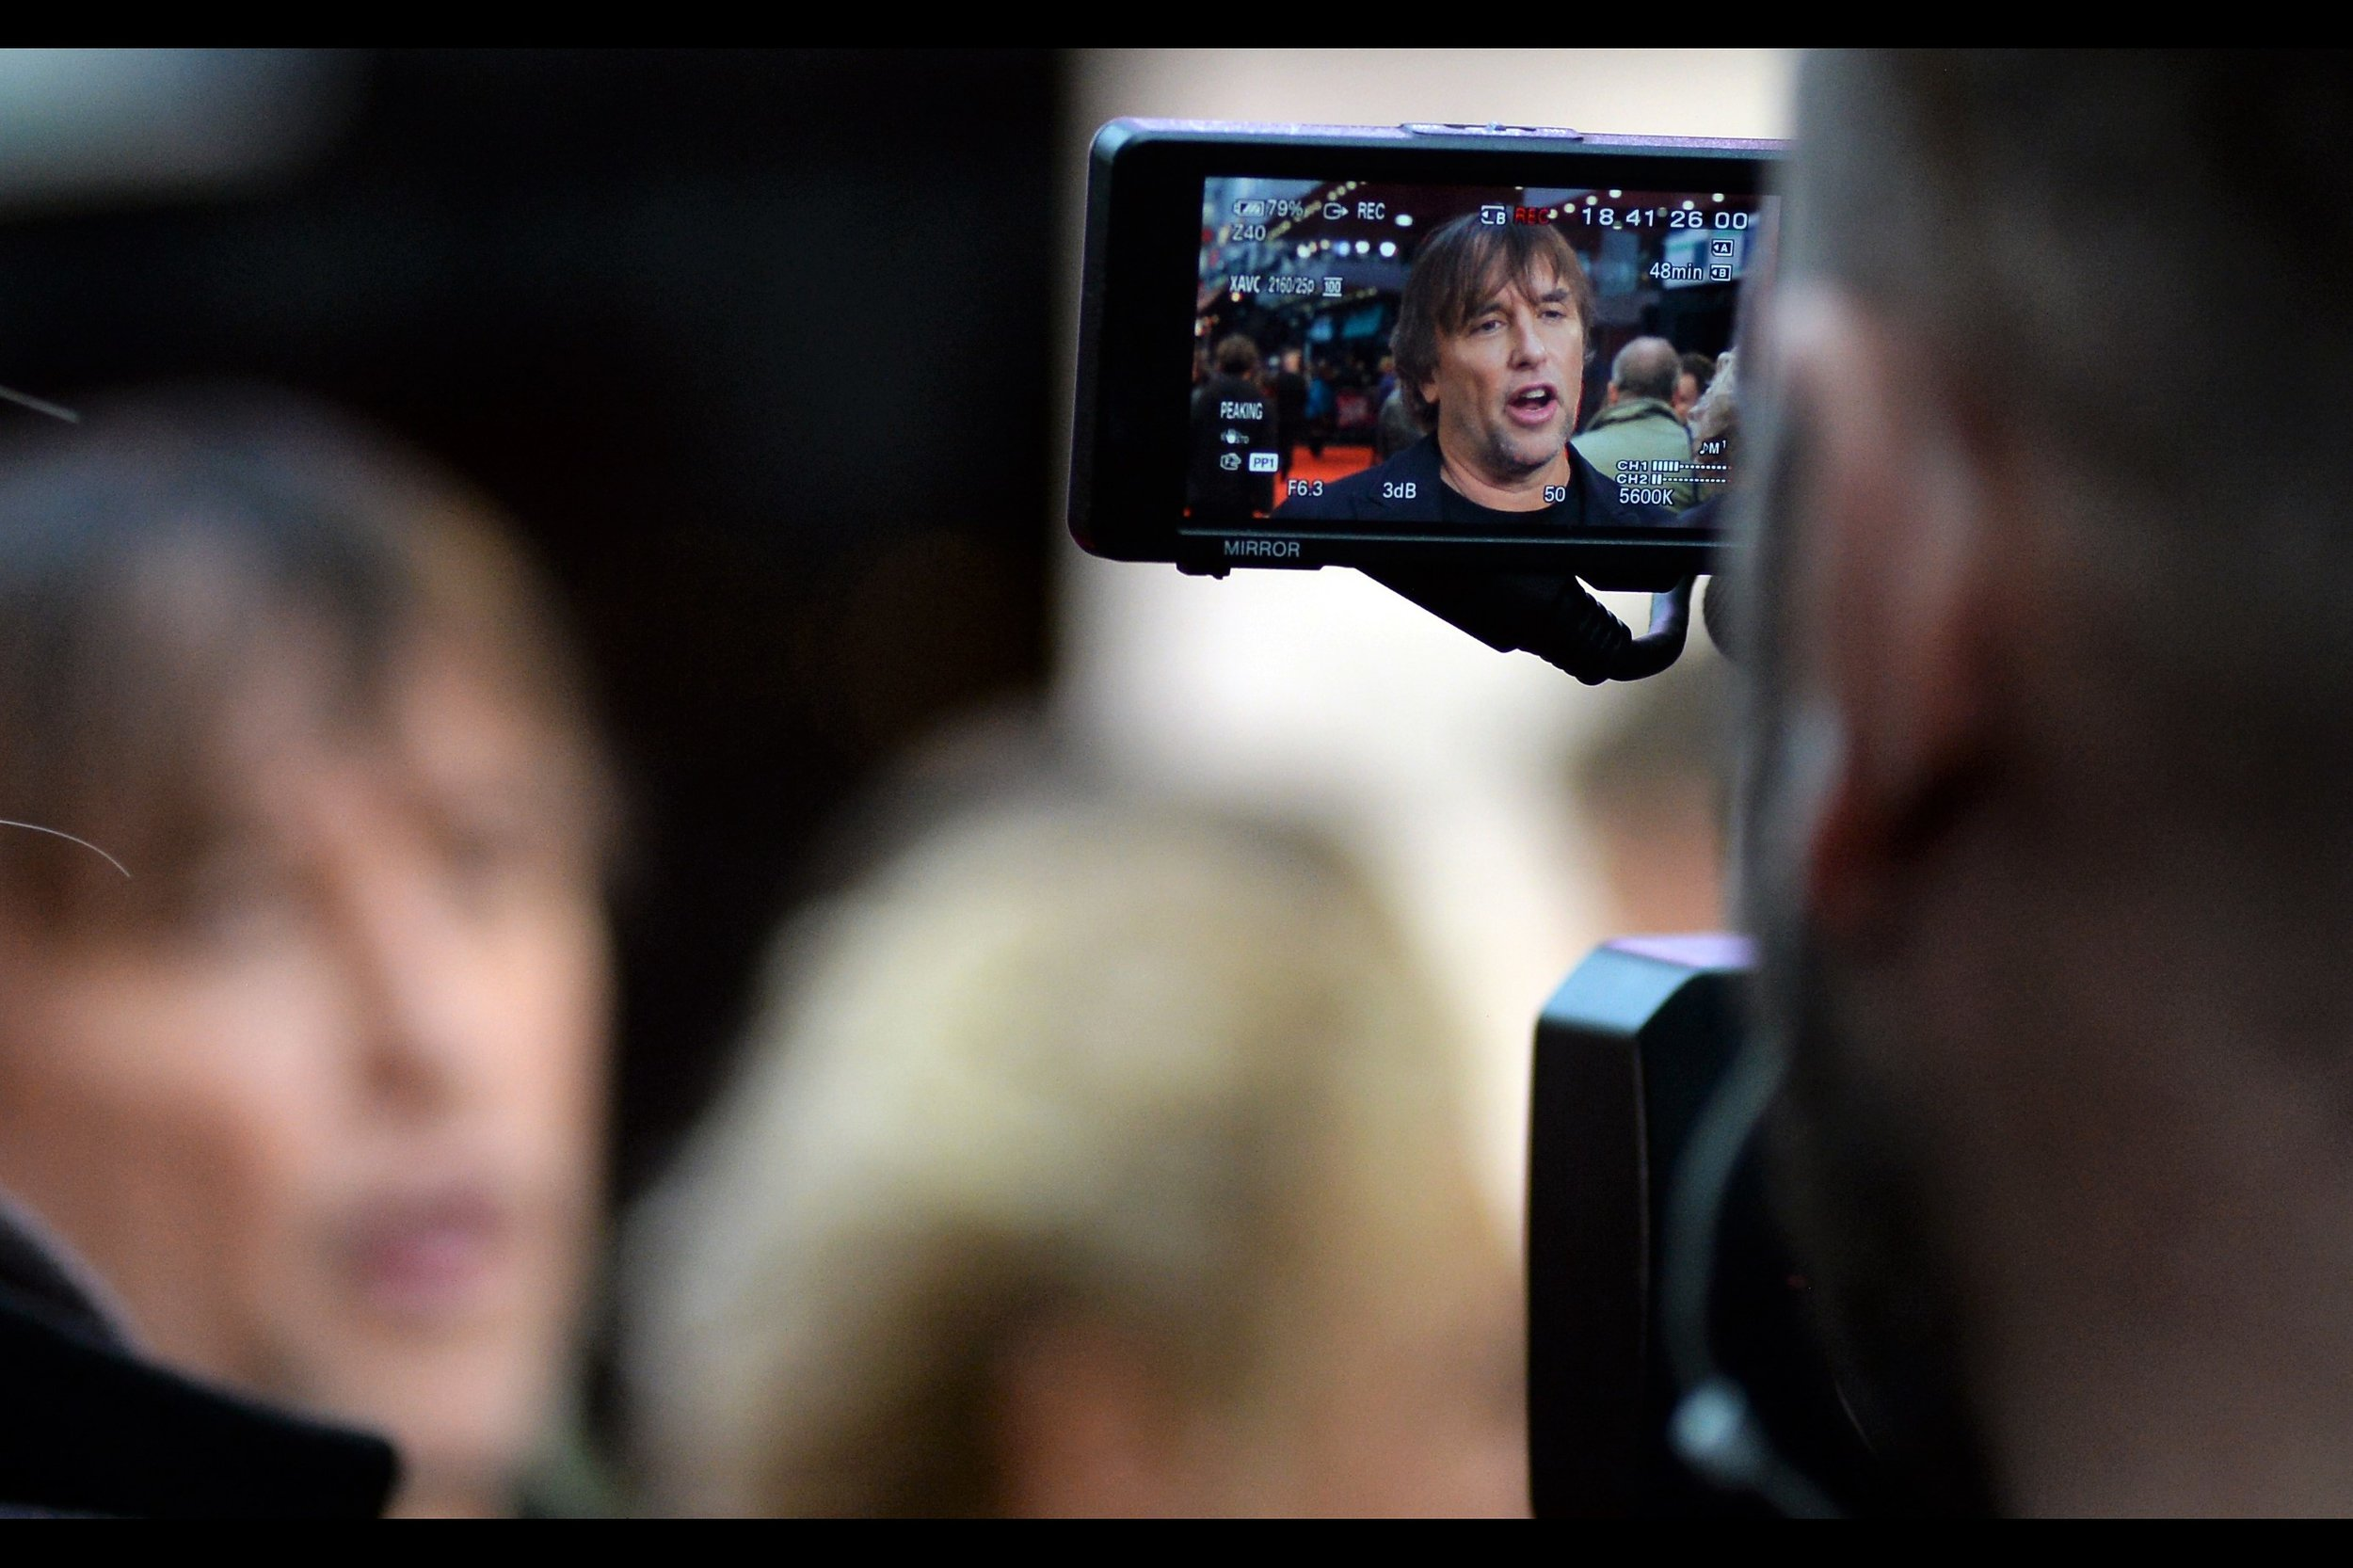 Meanwhile, here's blurry Richard Linklater.